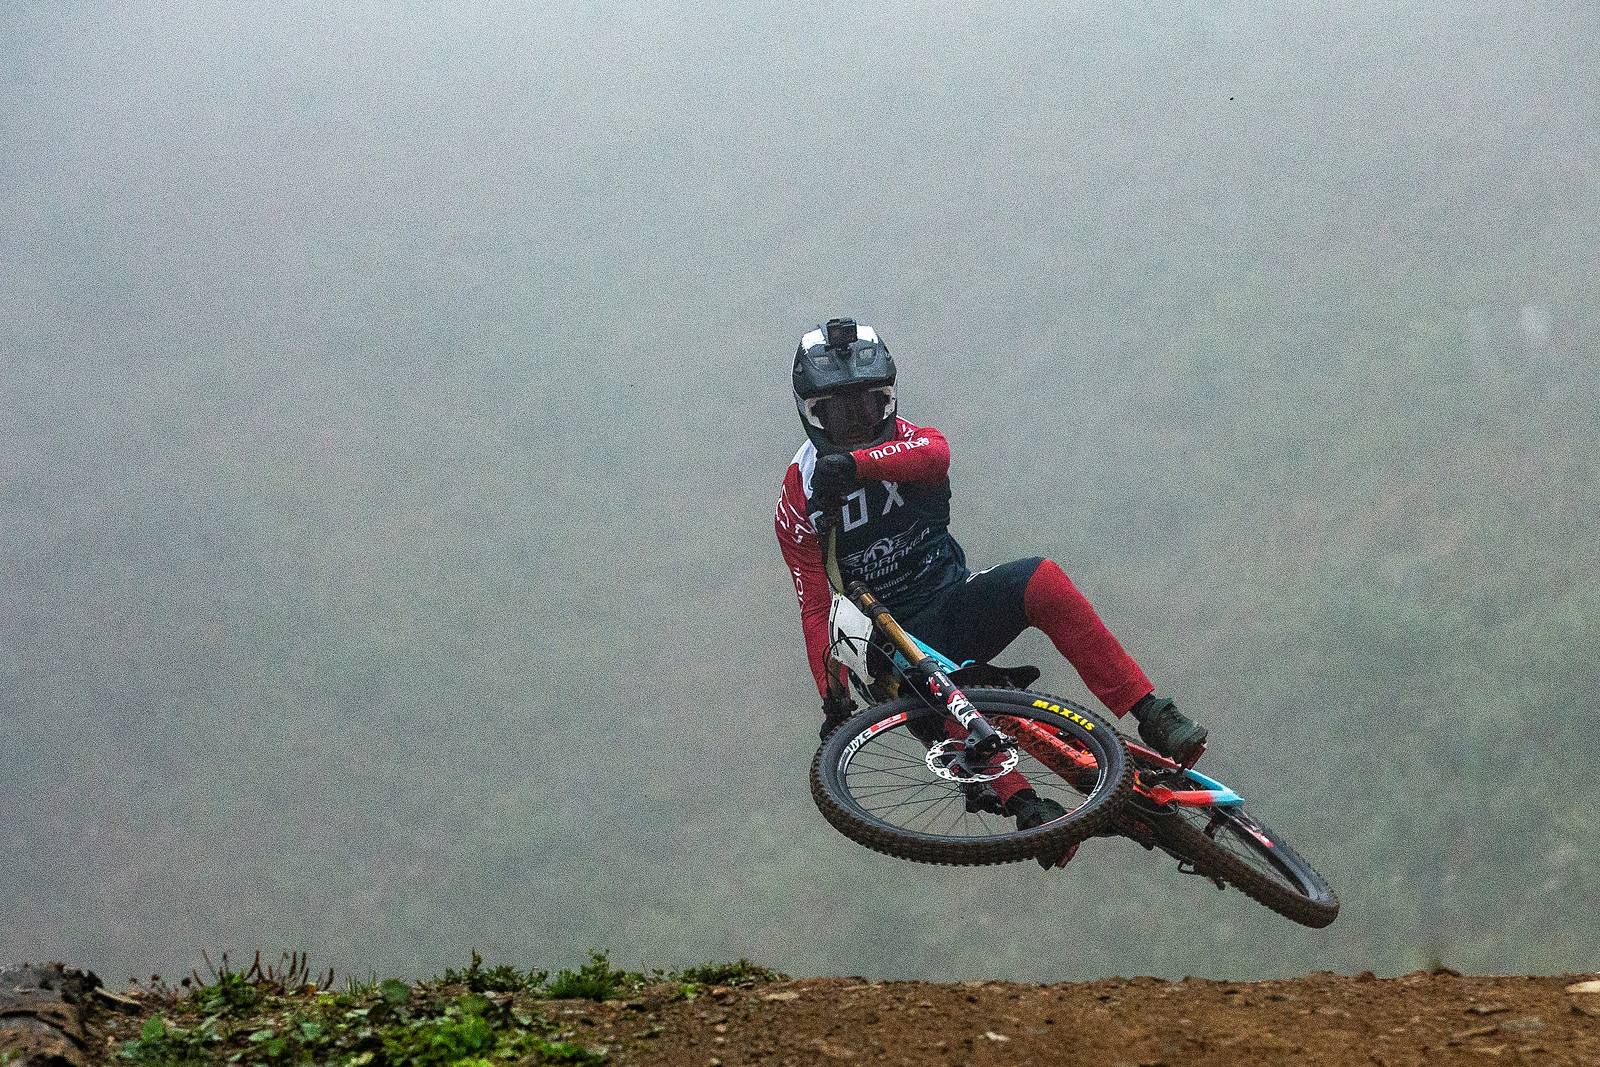 Laurie Greenland - WORLD CHAMPS WHIPFEST - Mountain Biking Pictures - Vital MTB